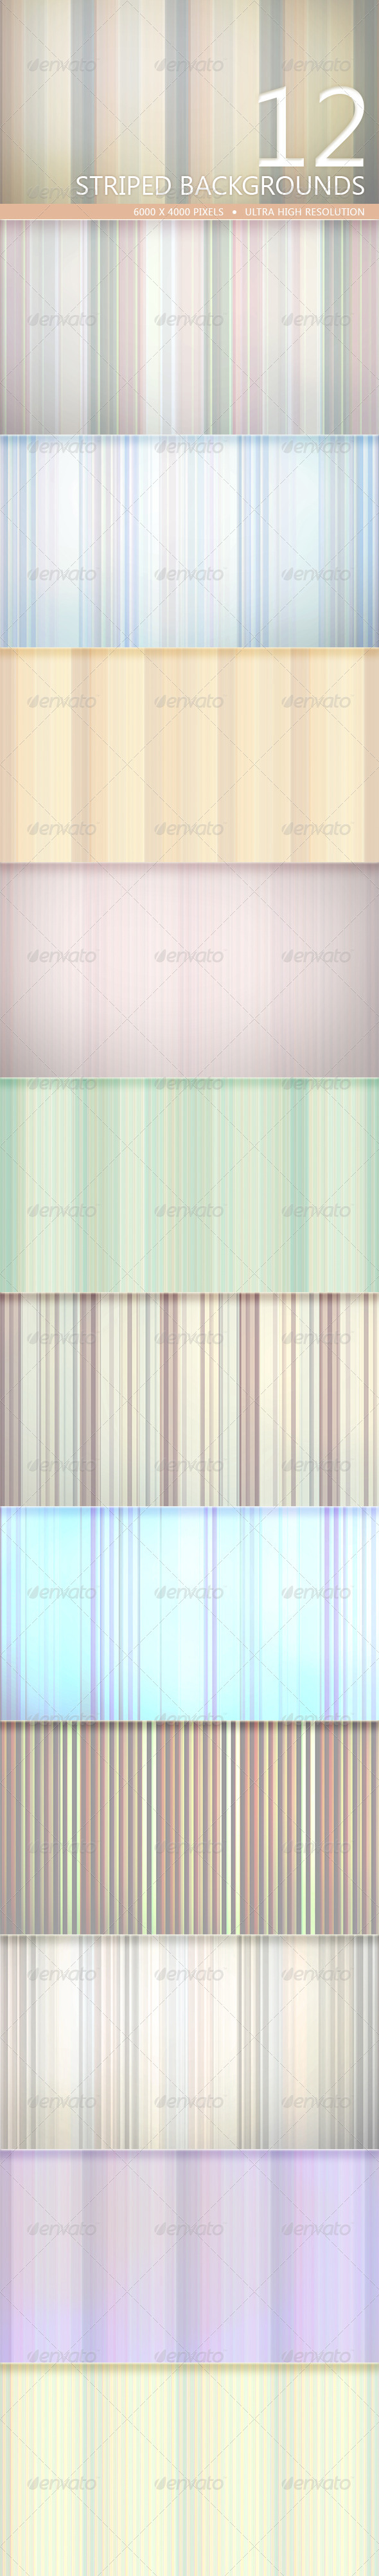 GraphicRiver Striped Backgrounds Volume 1 5212159